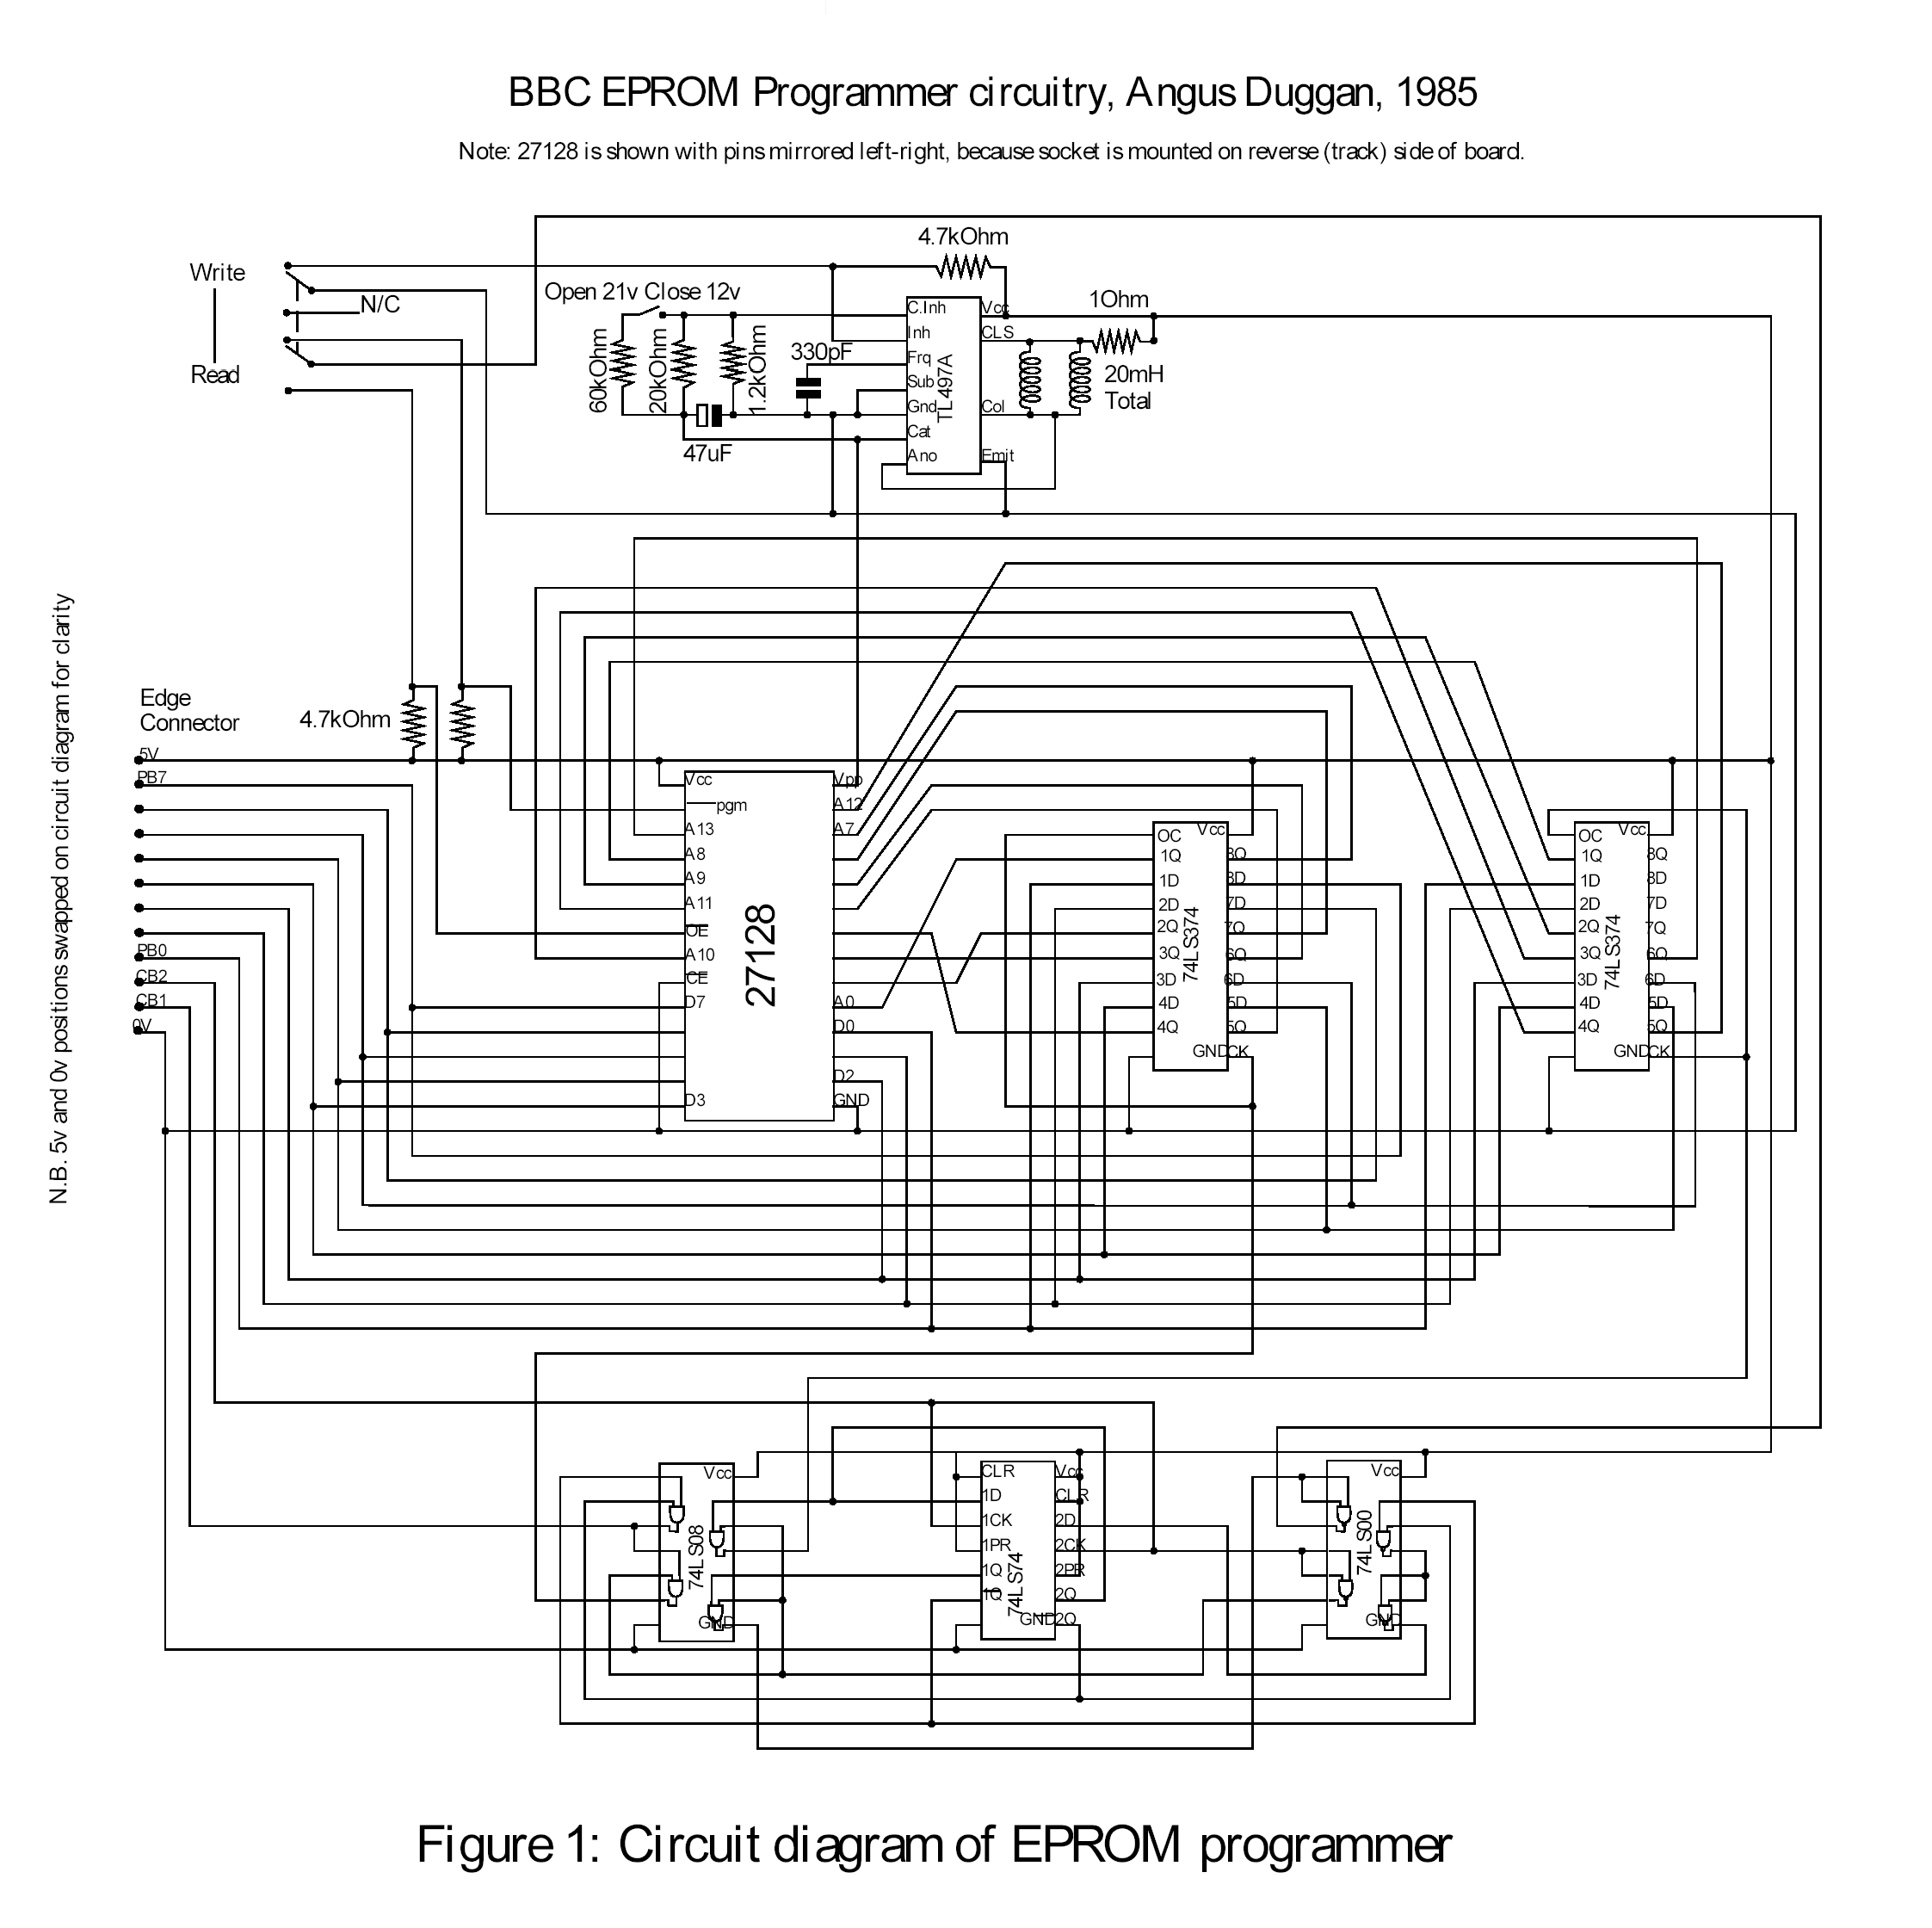 eprom programmer by angus duggan rh 8bs com eprom programmer schematic diagram simple eeprom programmer circuit diagram